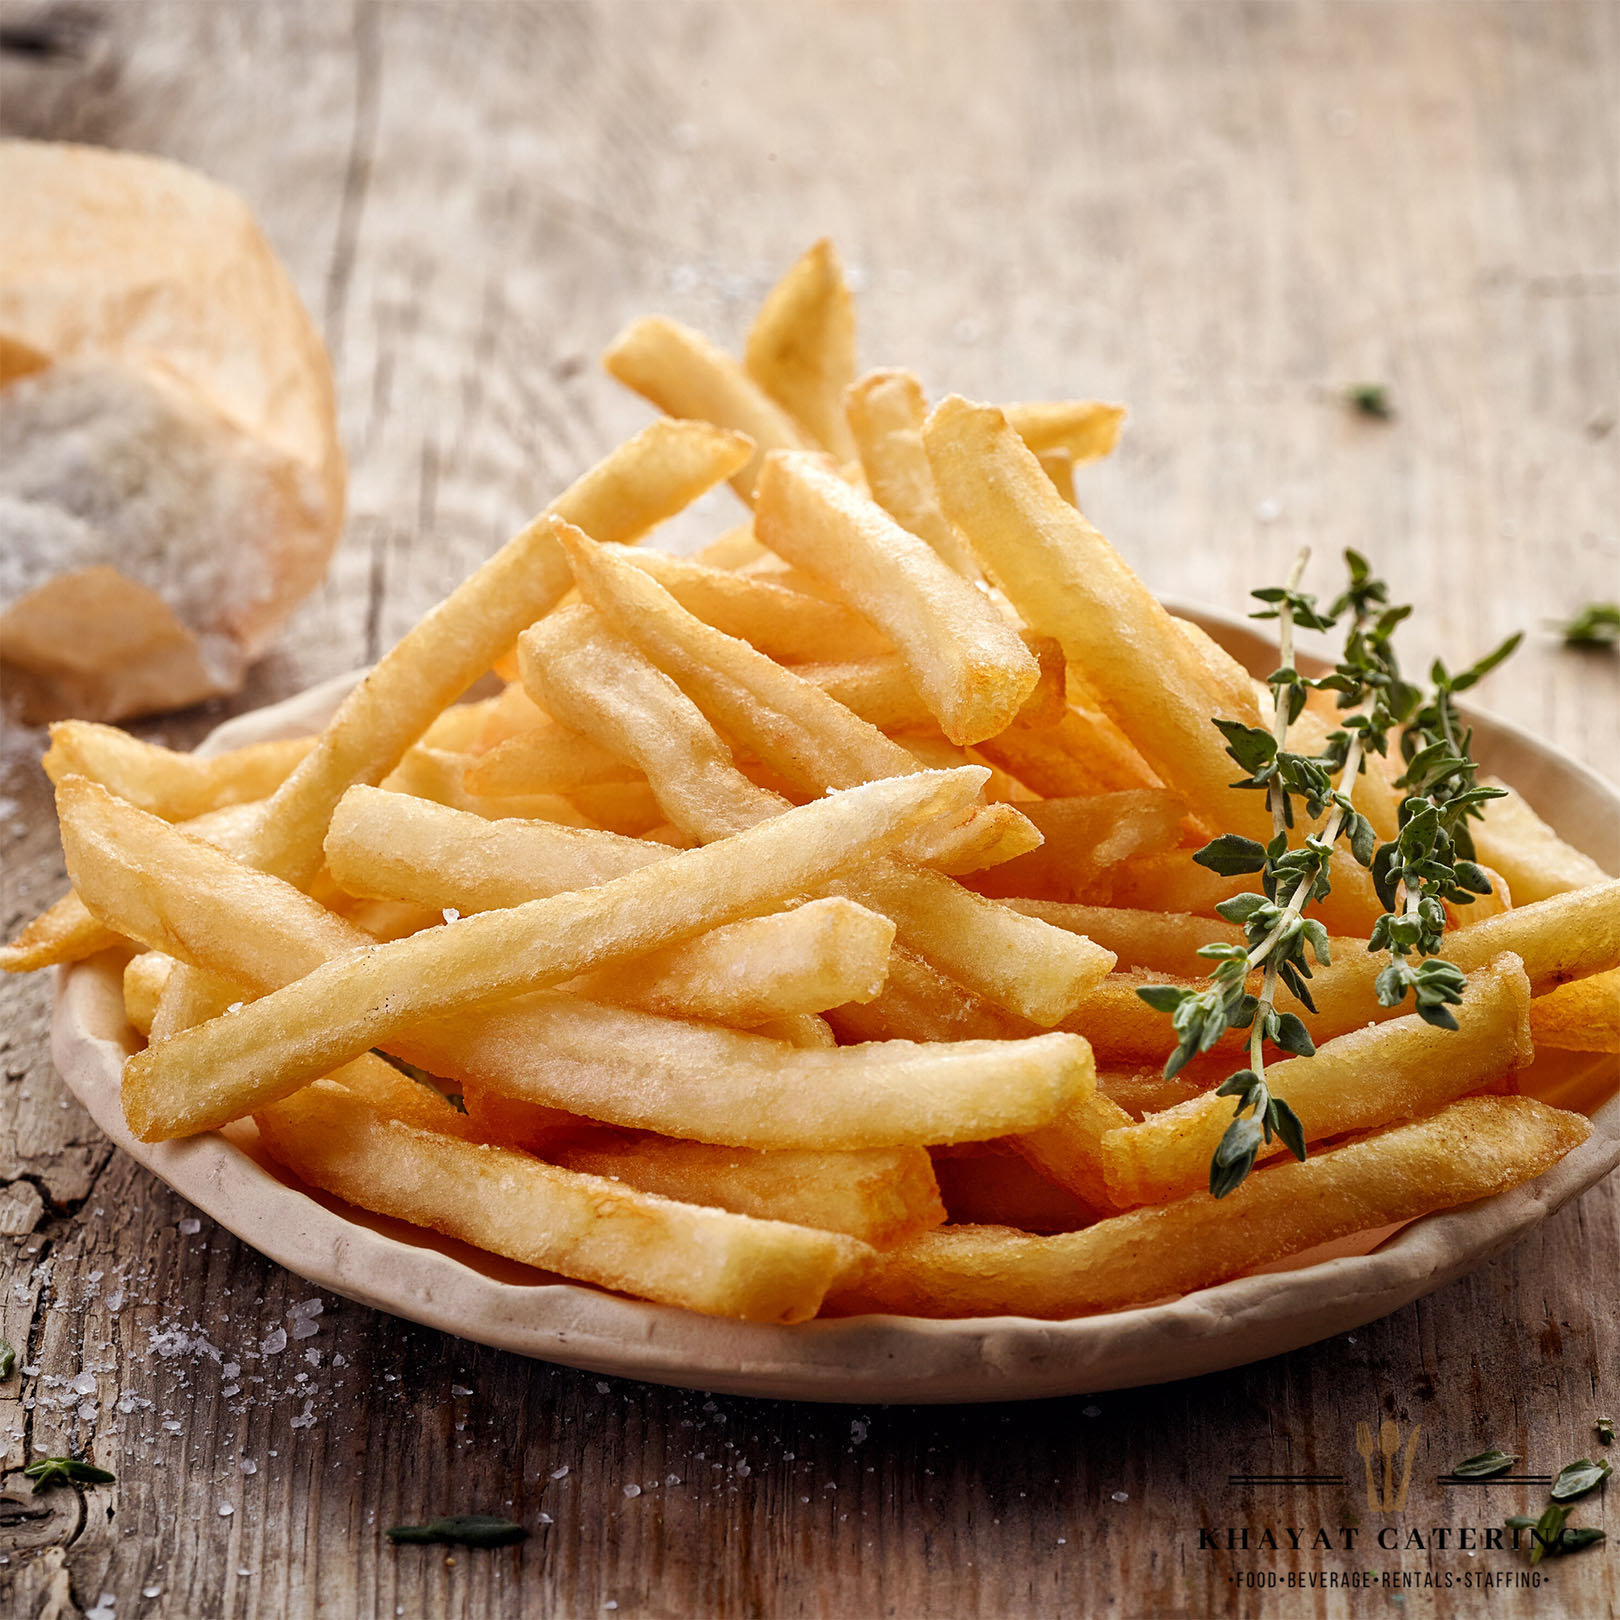 Khayat Catering French fries